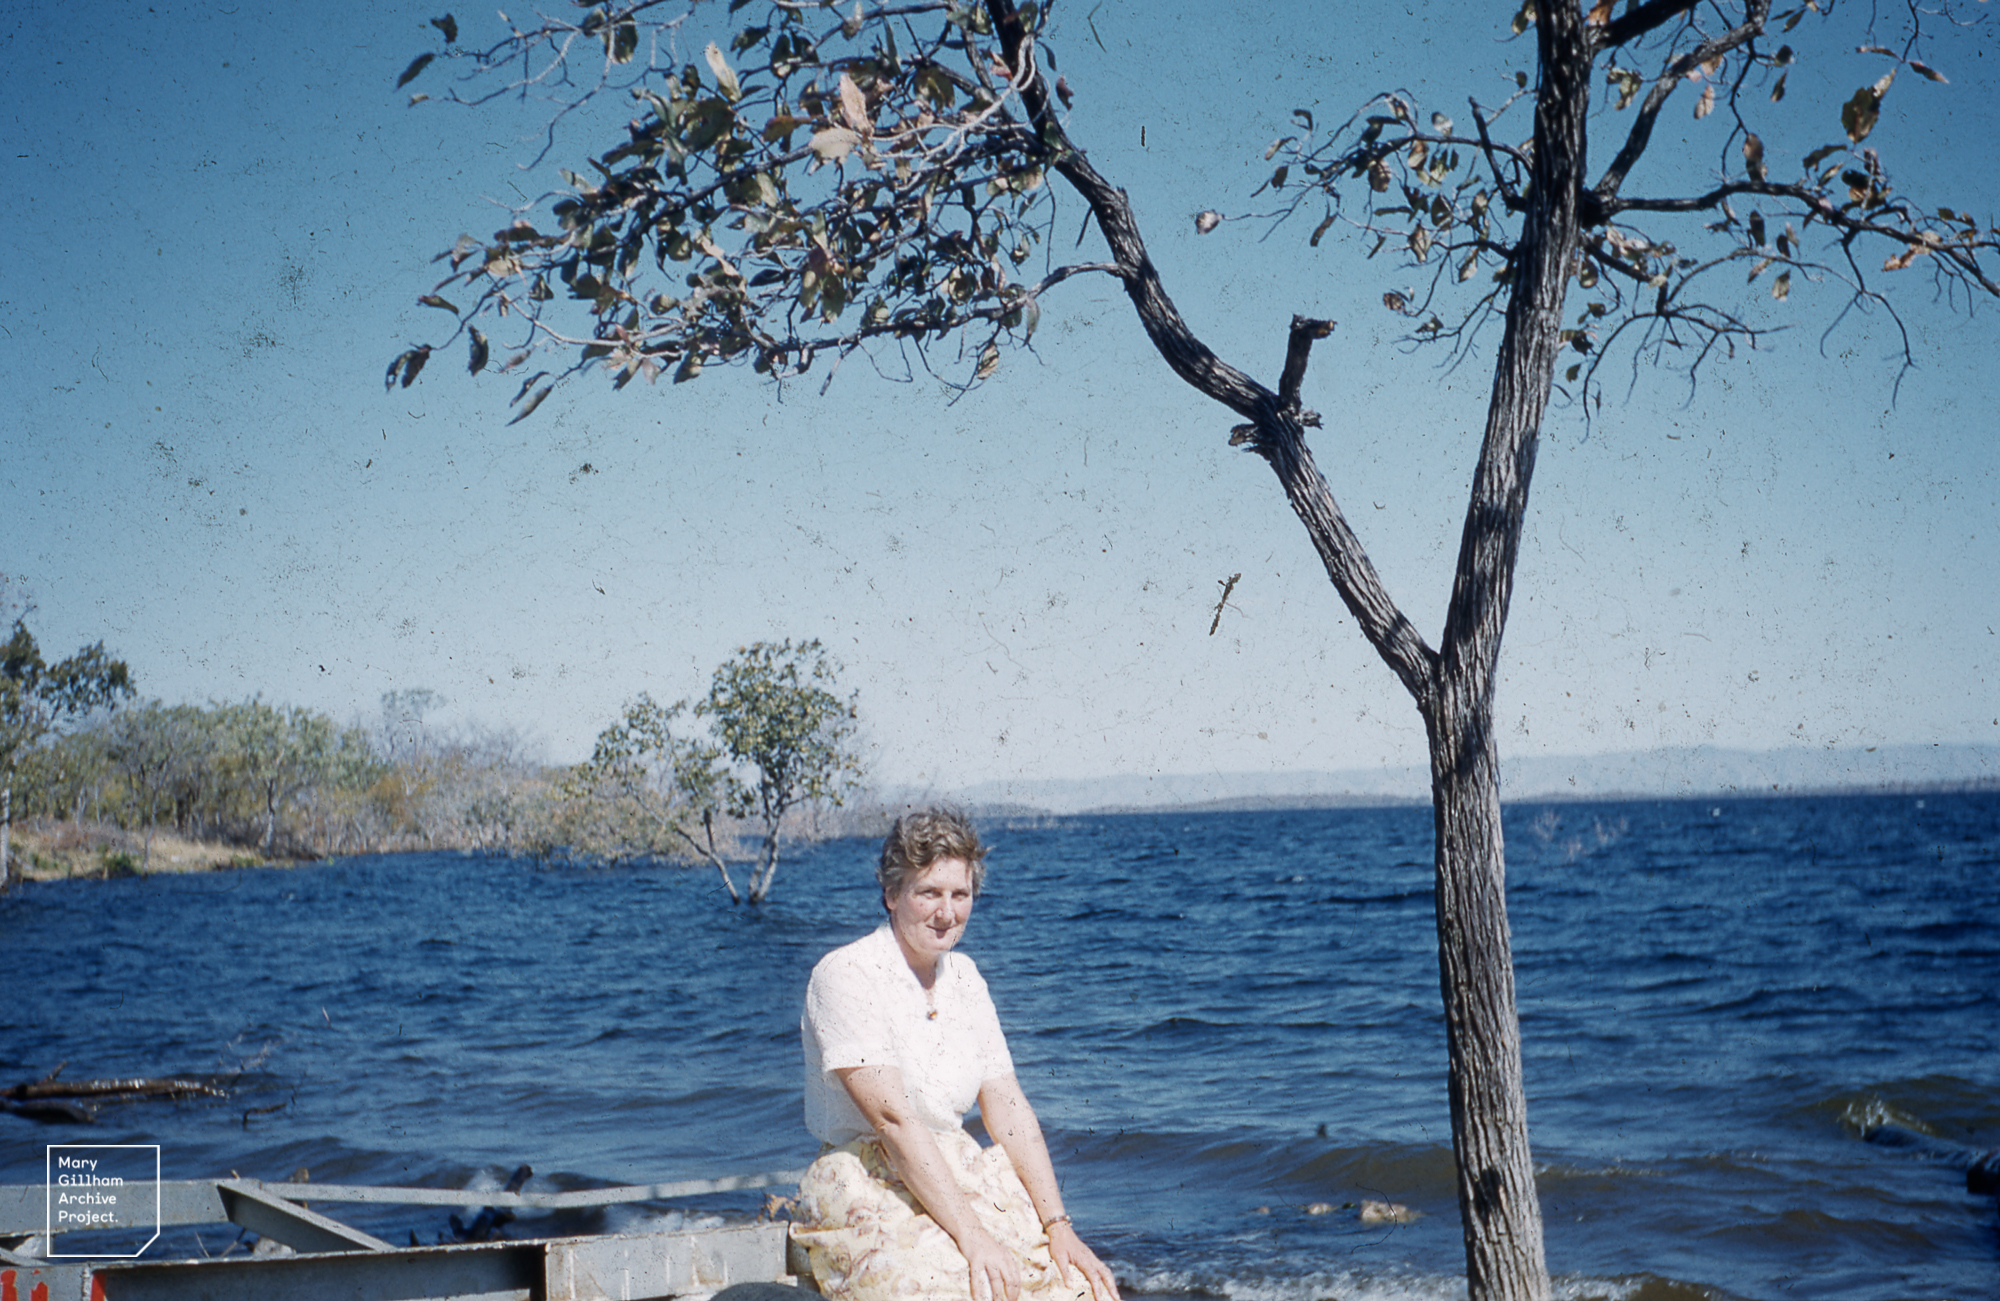 Mary Gillham at Kariba Lake (Zambia) 1960